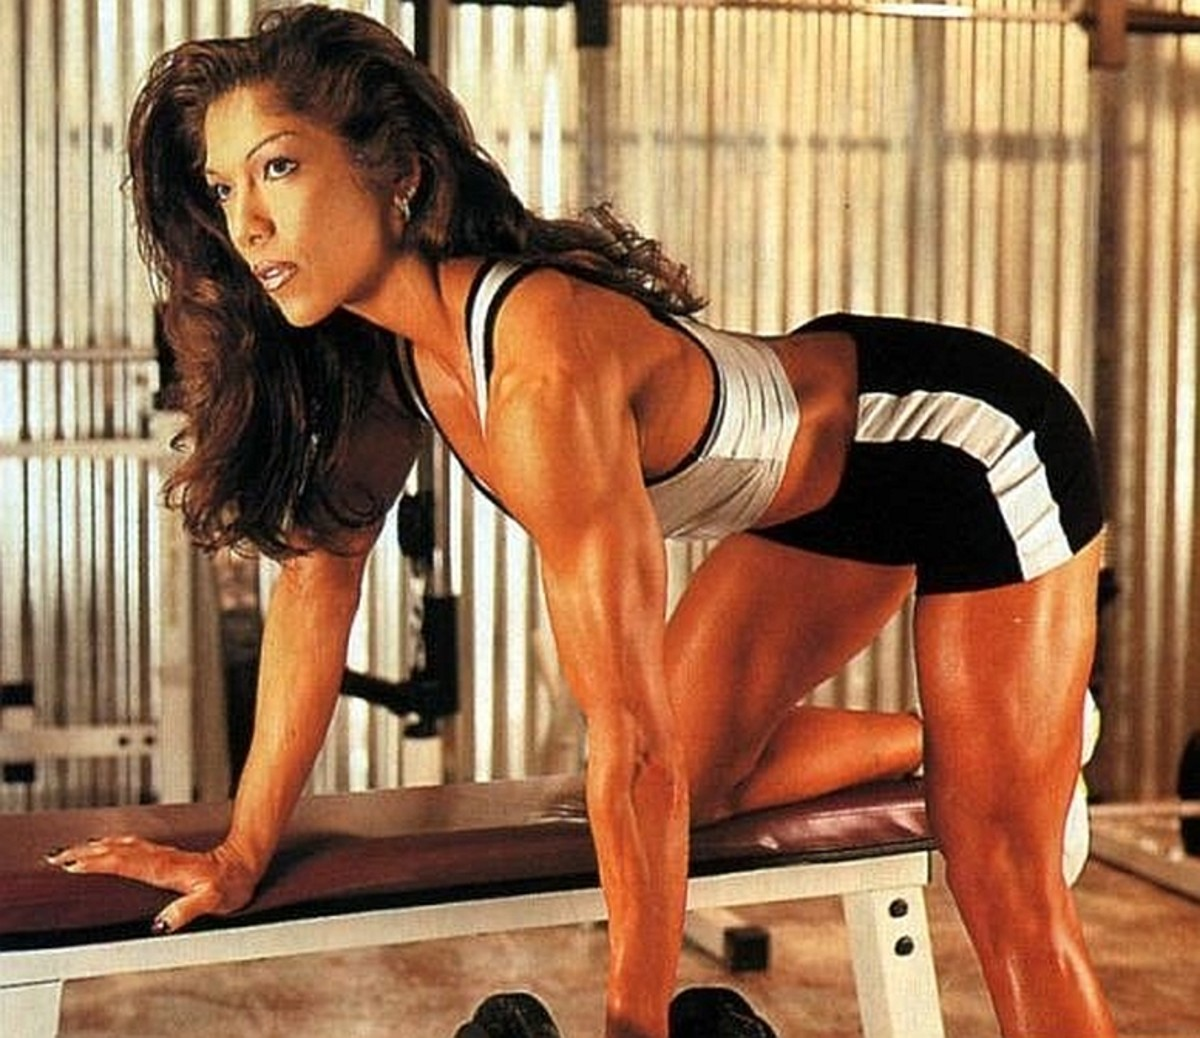 Susie Curry - Asian Fitness Competitors